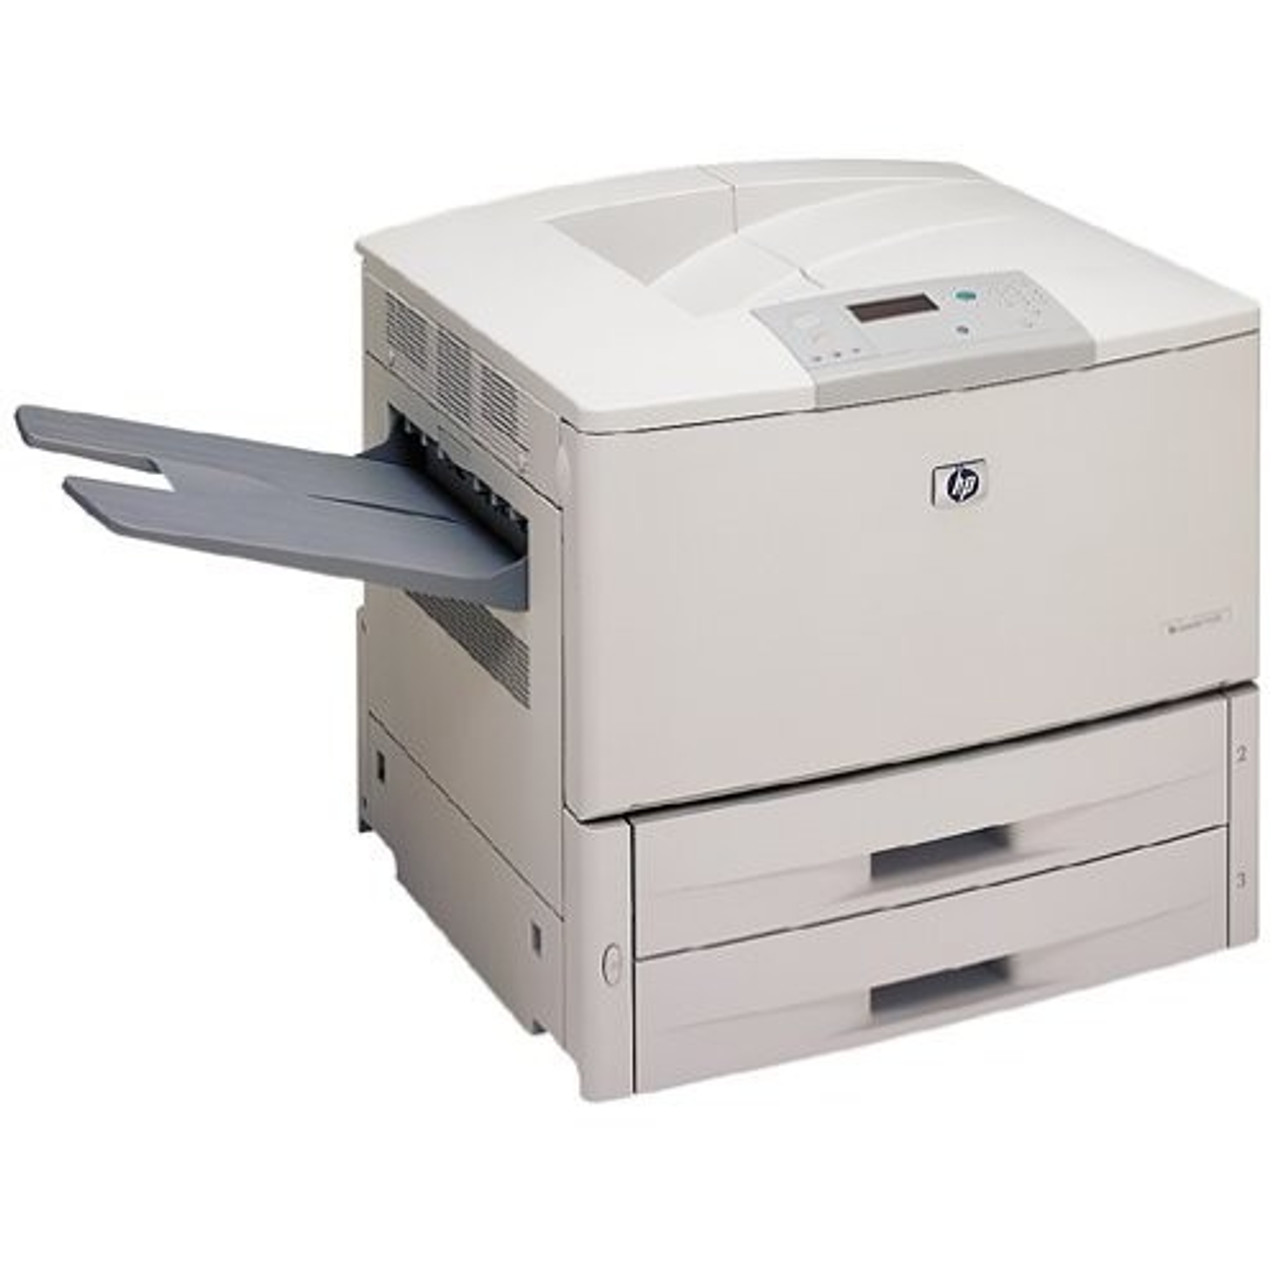 HP LaserJet 9050 - Q3721A - HP 11x17 Laser Printer for sale